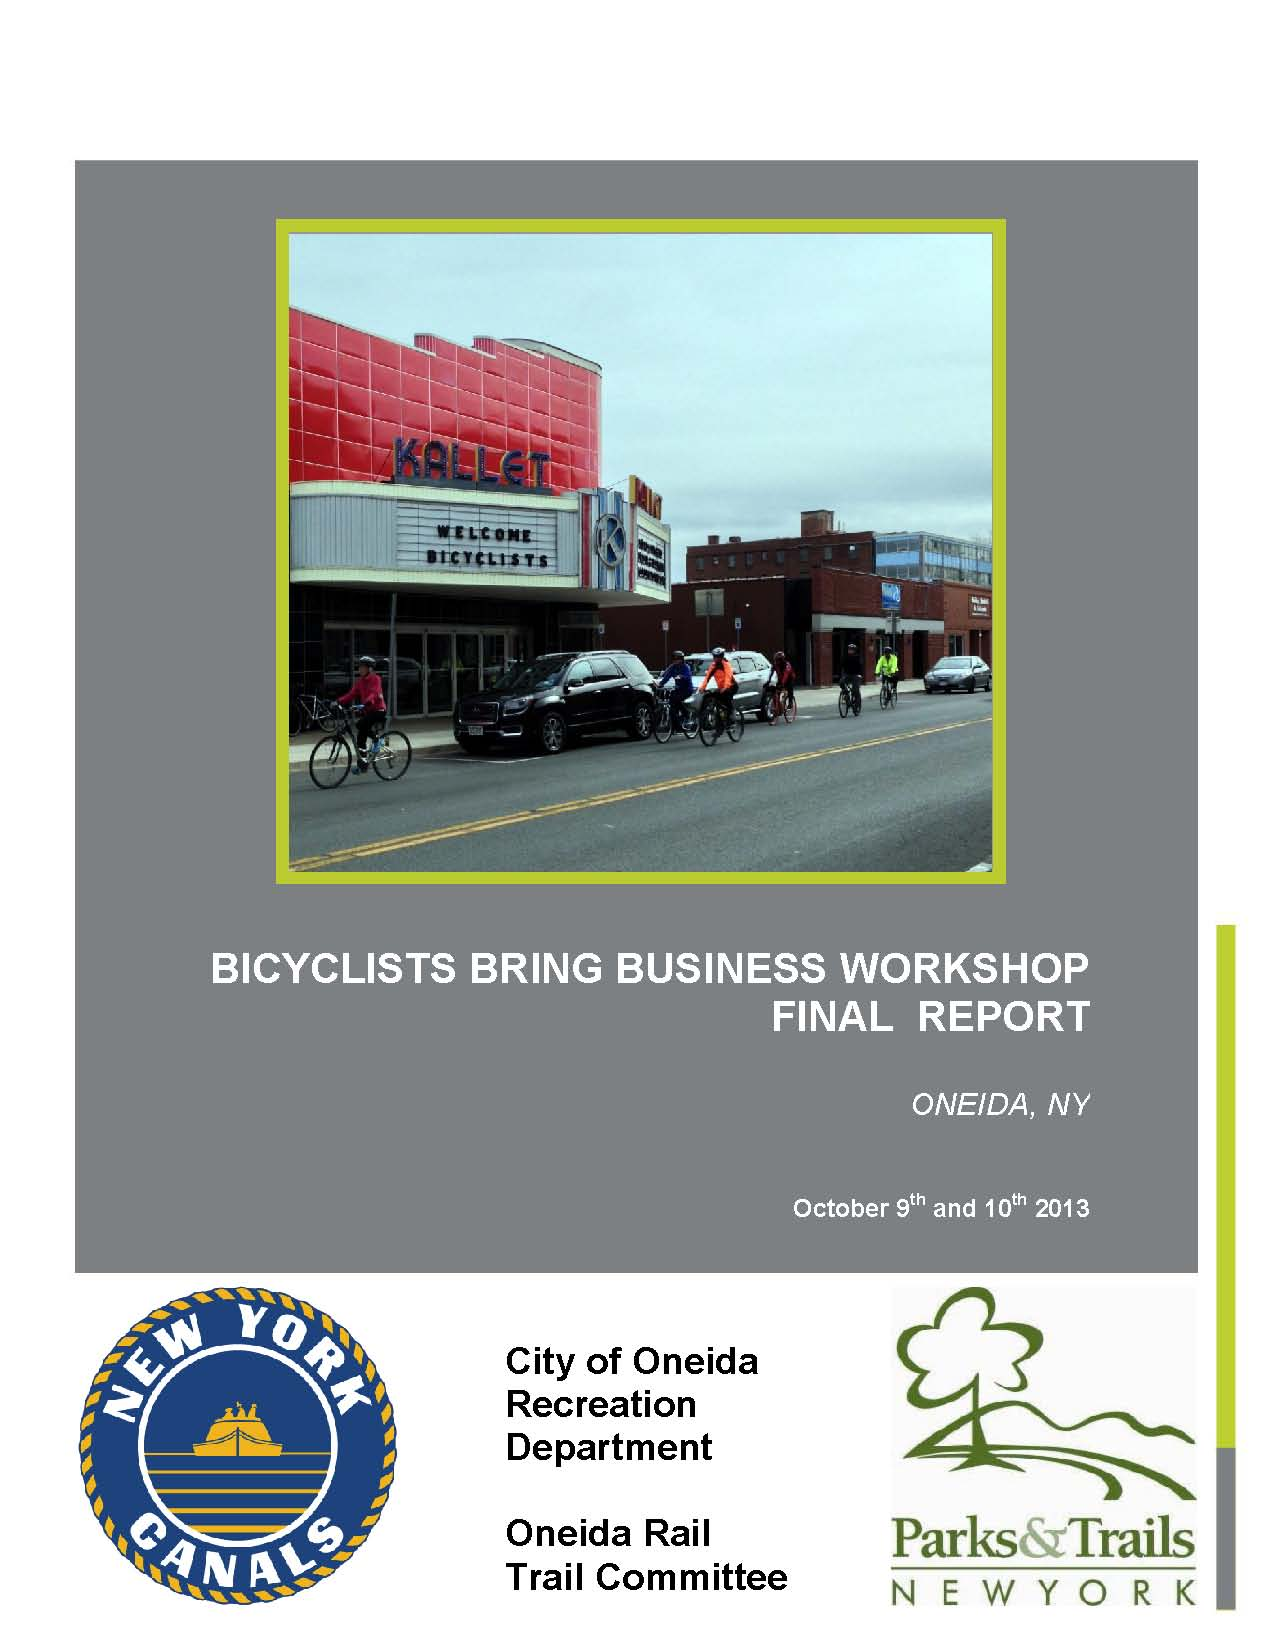 Bicyclists Bring Business Workshop Final Report cover